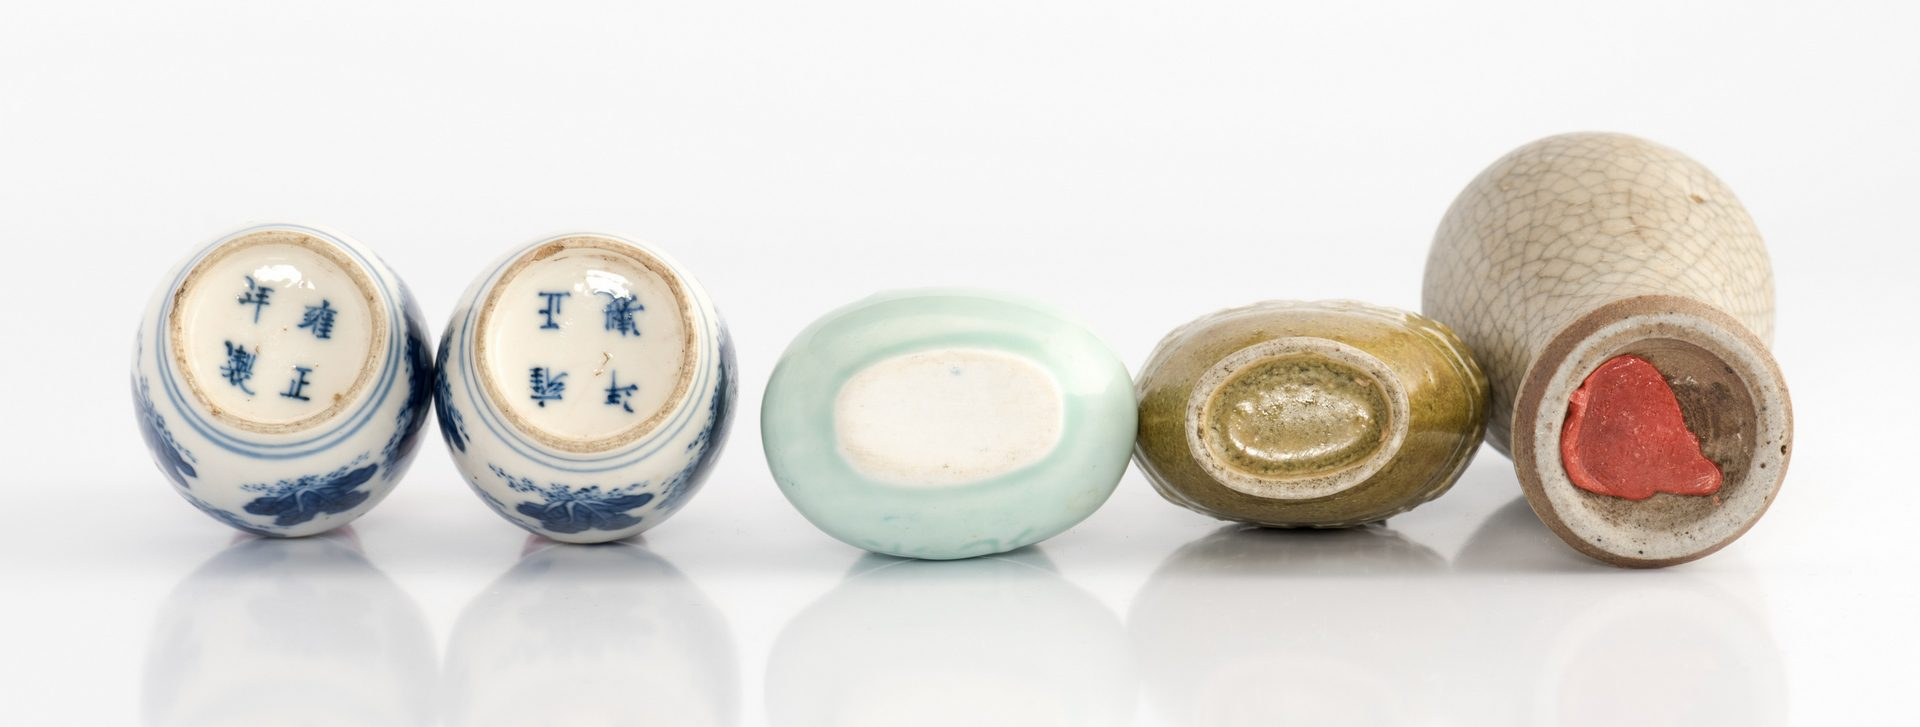 Lot 9: Collection of 5 Ceramic Snuff Bottles